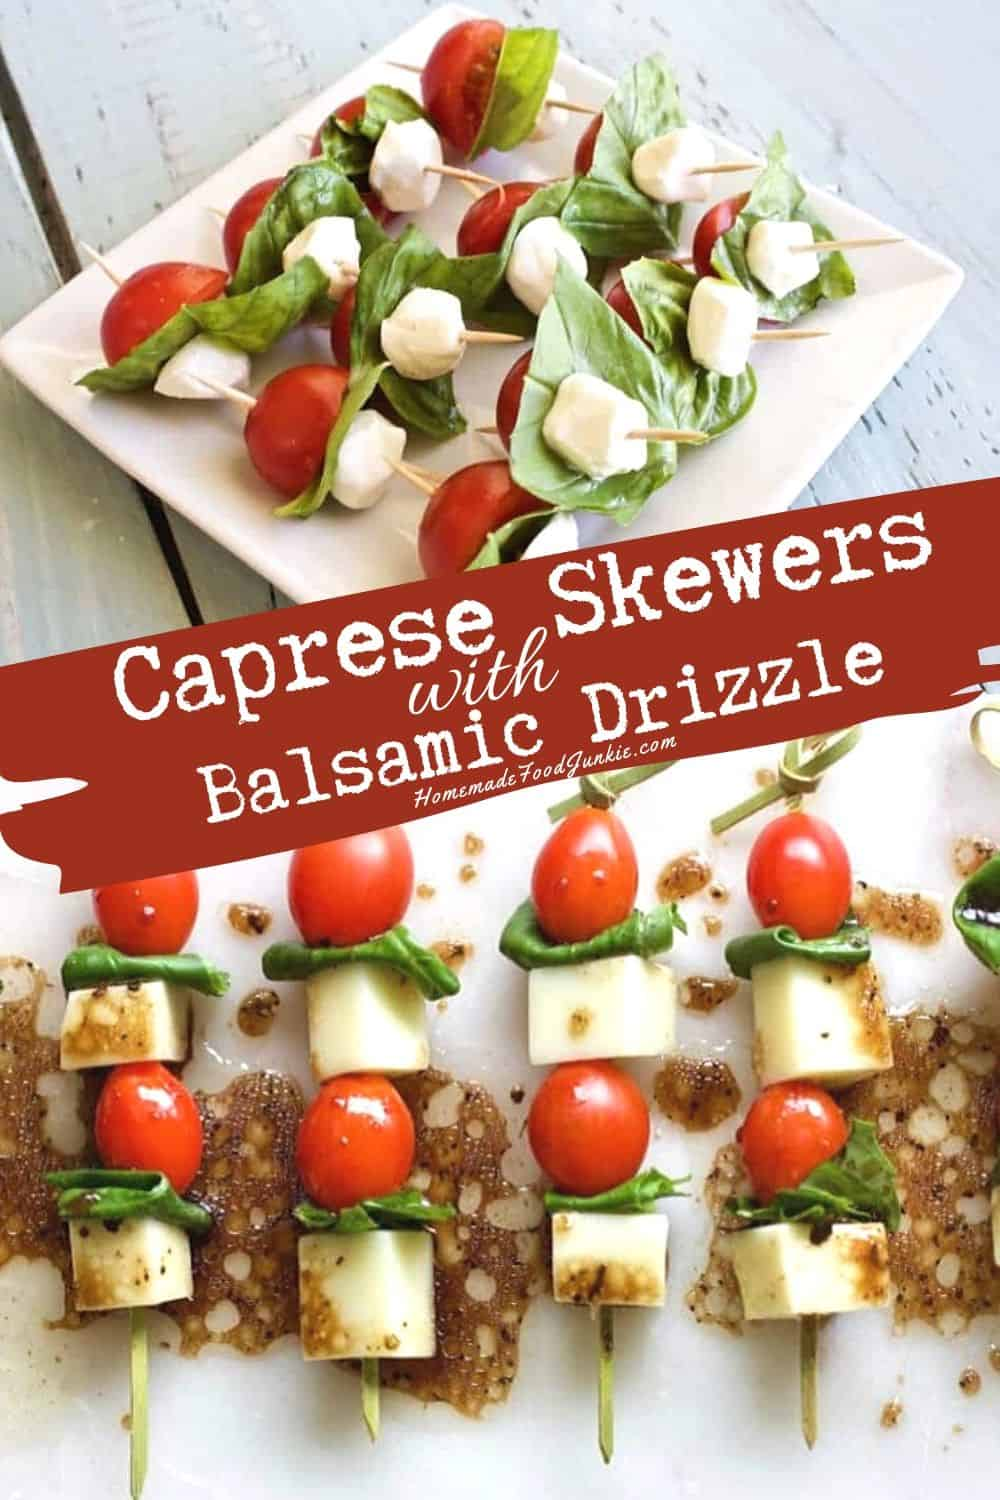 Caprese Skewers with balsamic drizzle-pin image